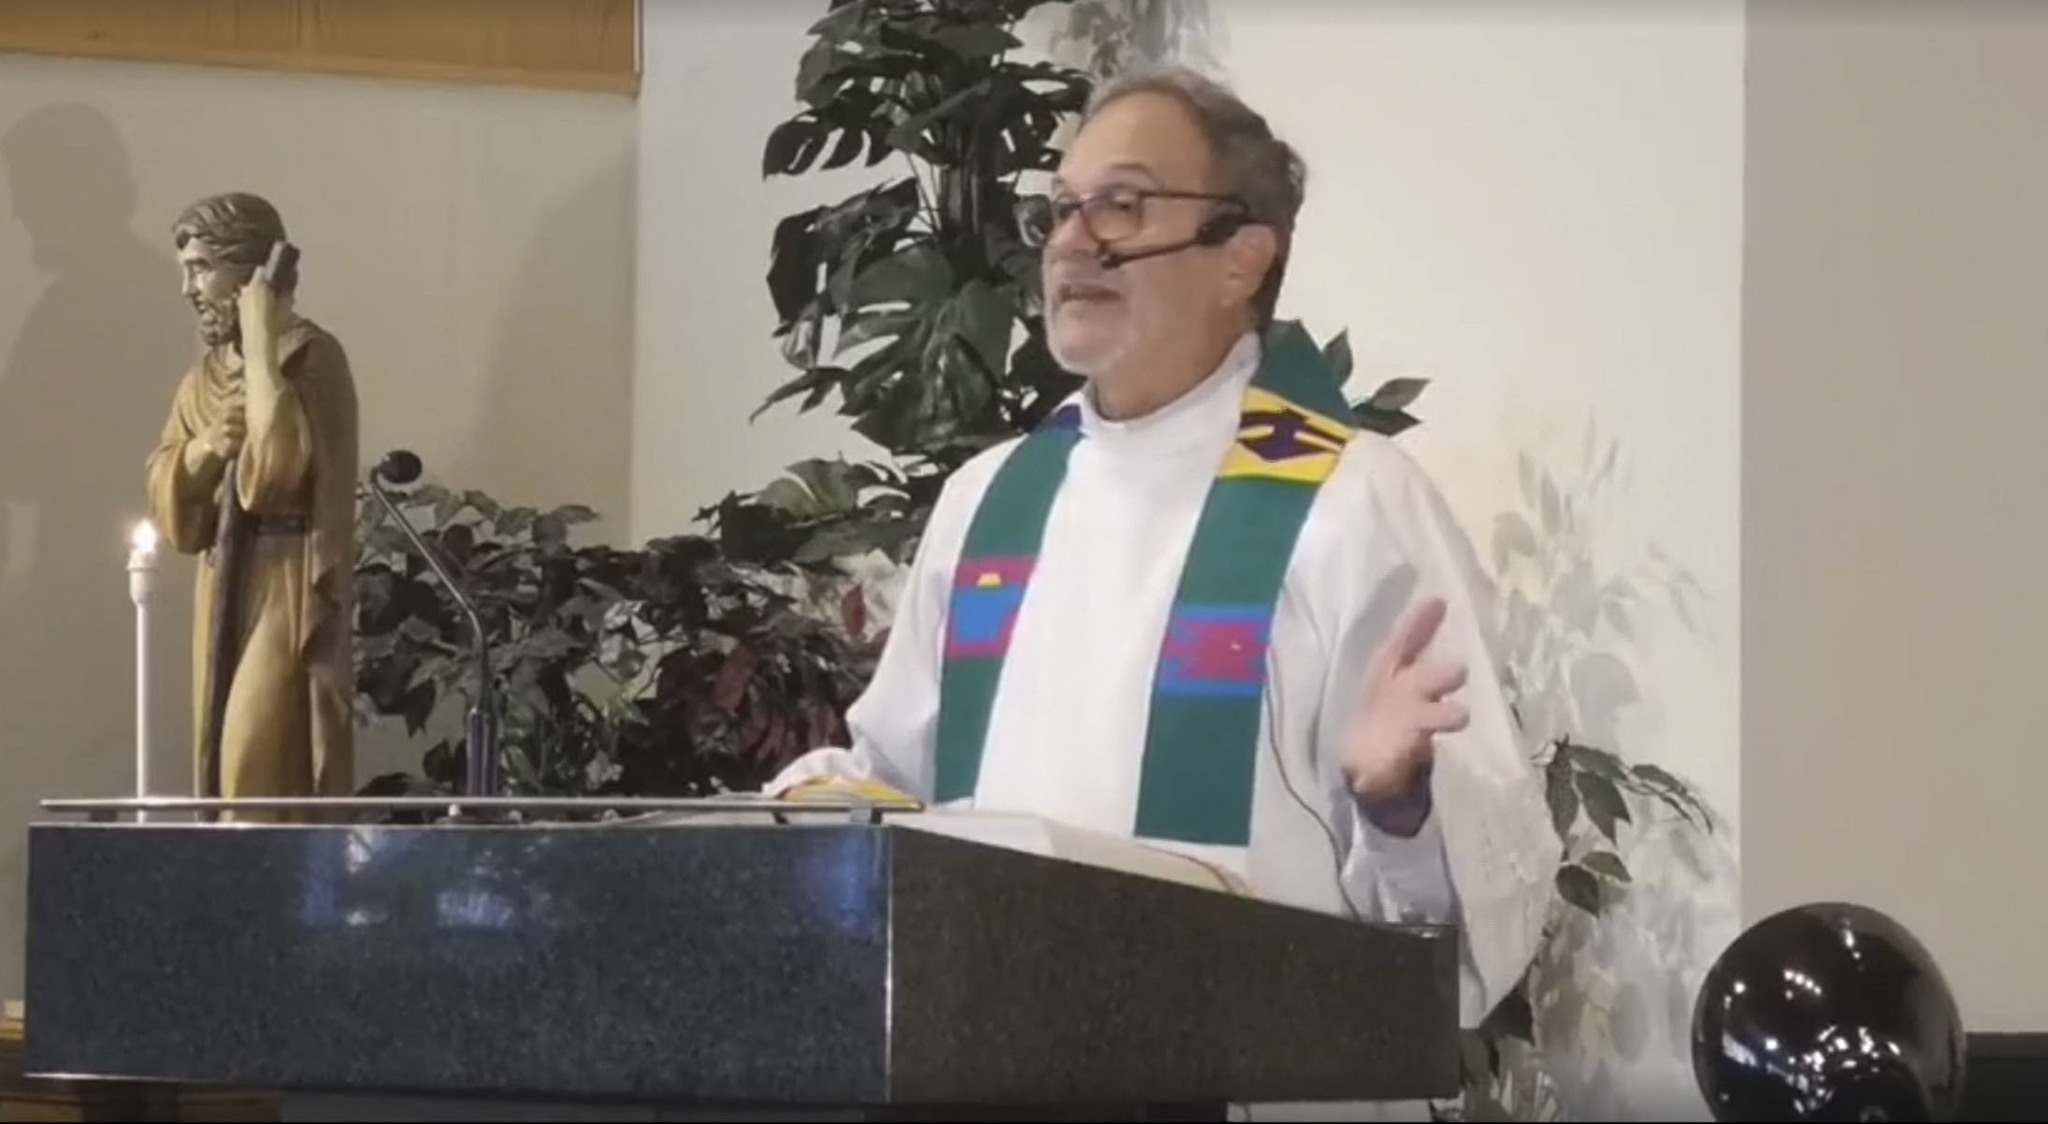 Father Rhéal Forest's recently used a sermon to say that residential school survivors lied to get settlement money. (FACEBOOK)